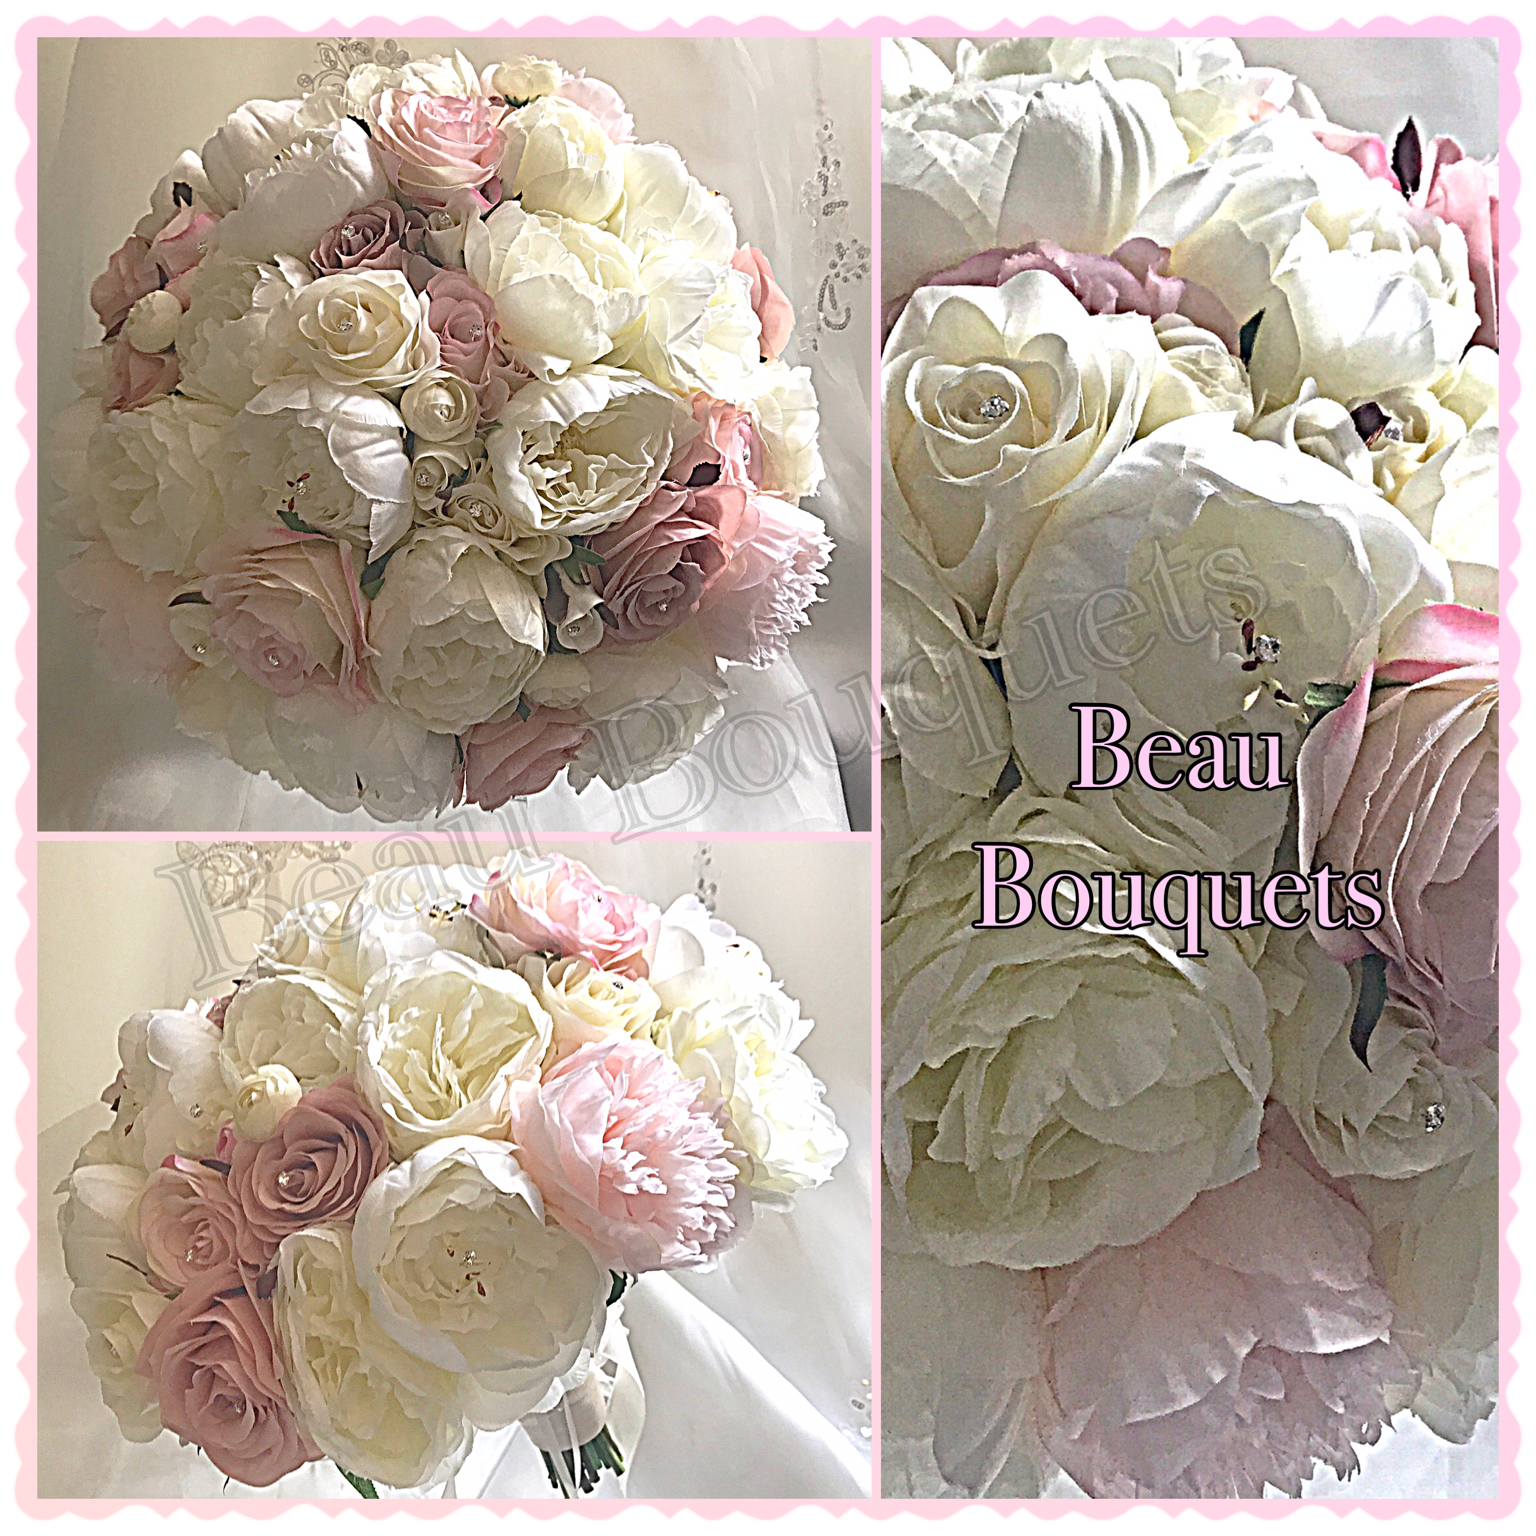 PASSION - Oversized round loose peony bride bouquet package mix of large ivory peonies & roses with dusty pink touches